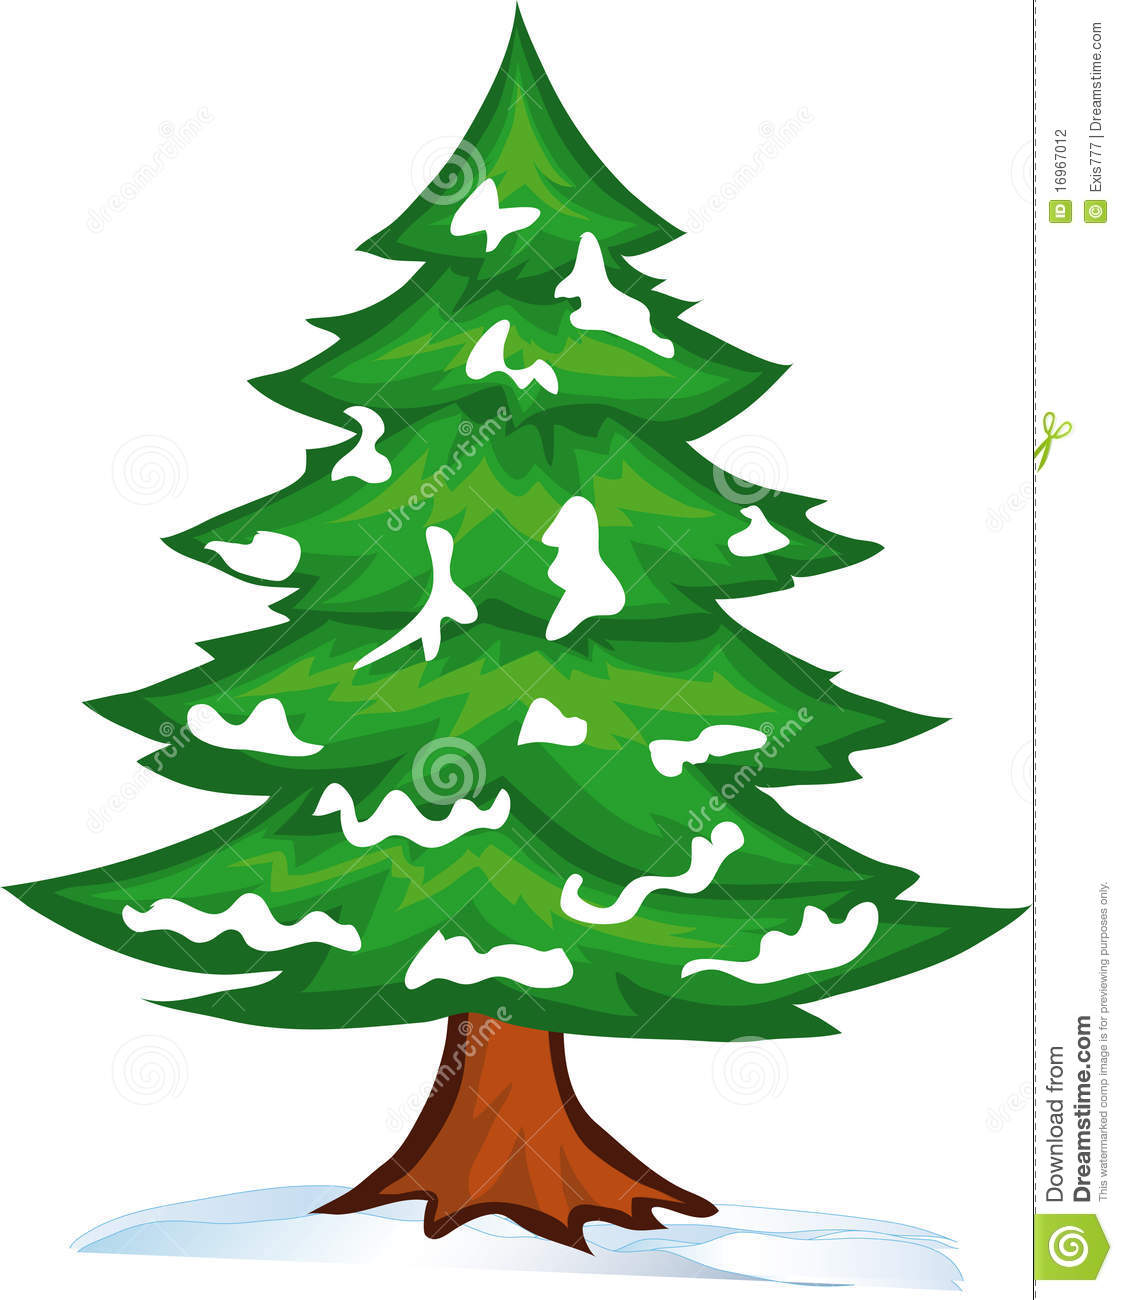 Winter Pine Trees Clipart   Clipart Panda   Free Clipart Images